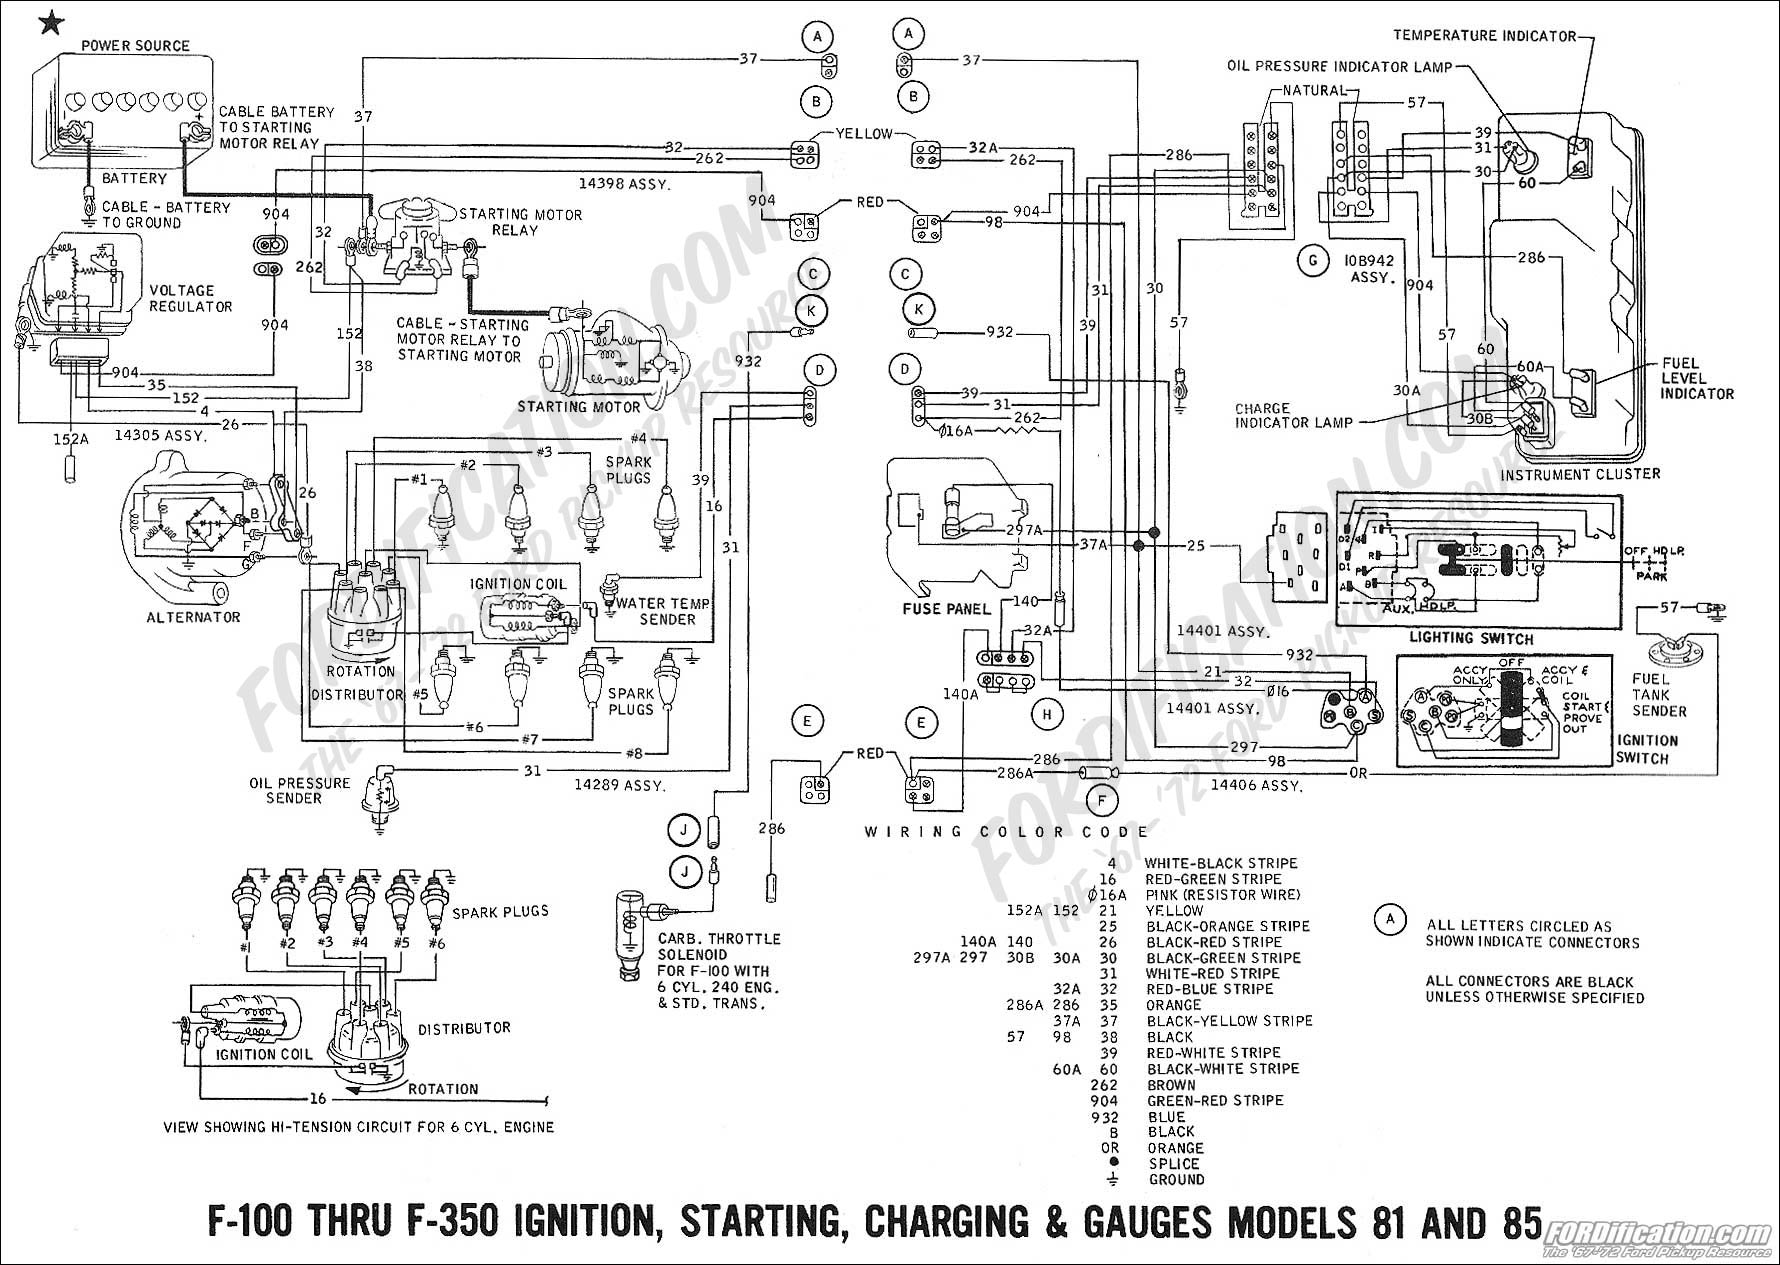 2006 Ford F 250 Wiring Schematic 85 1 Anything Diagrams 1968 Dodge Charger Diagram 6 Truck Technical Drawings And Schematics Section H Rh Fordification Com Jeep Grand Cherokee